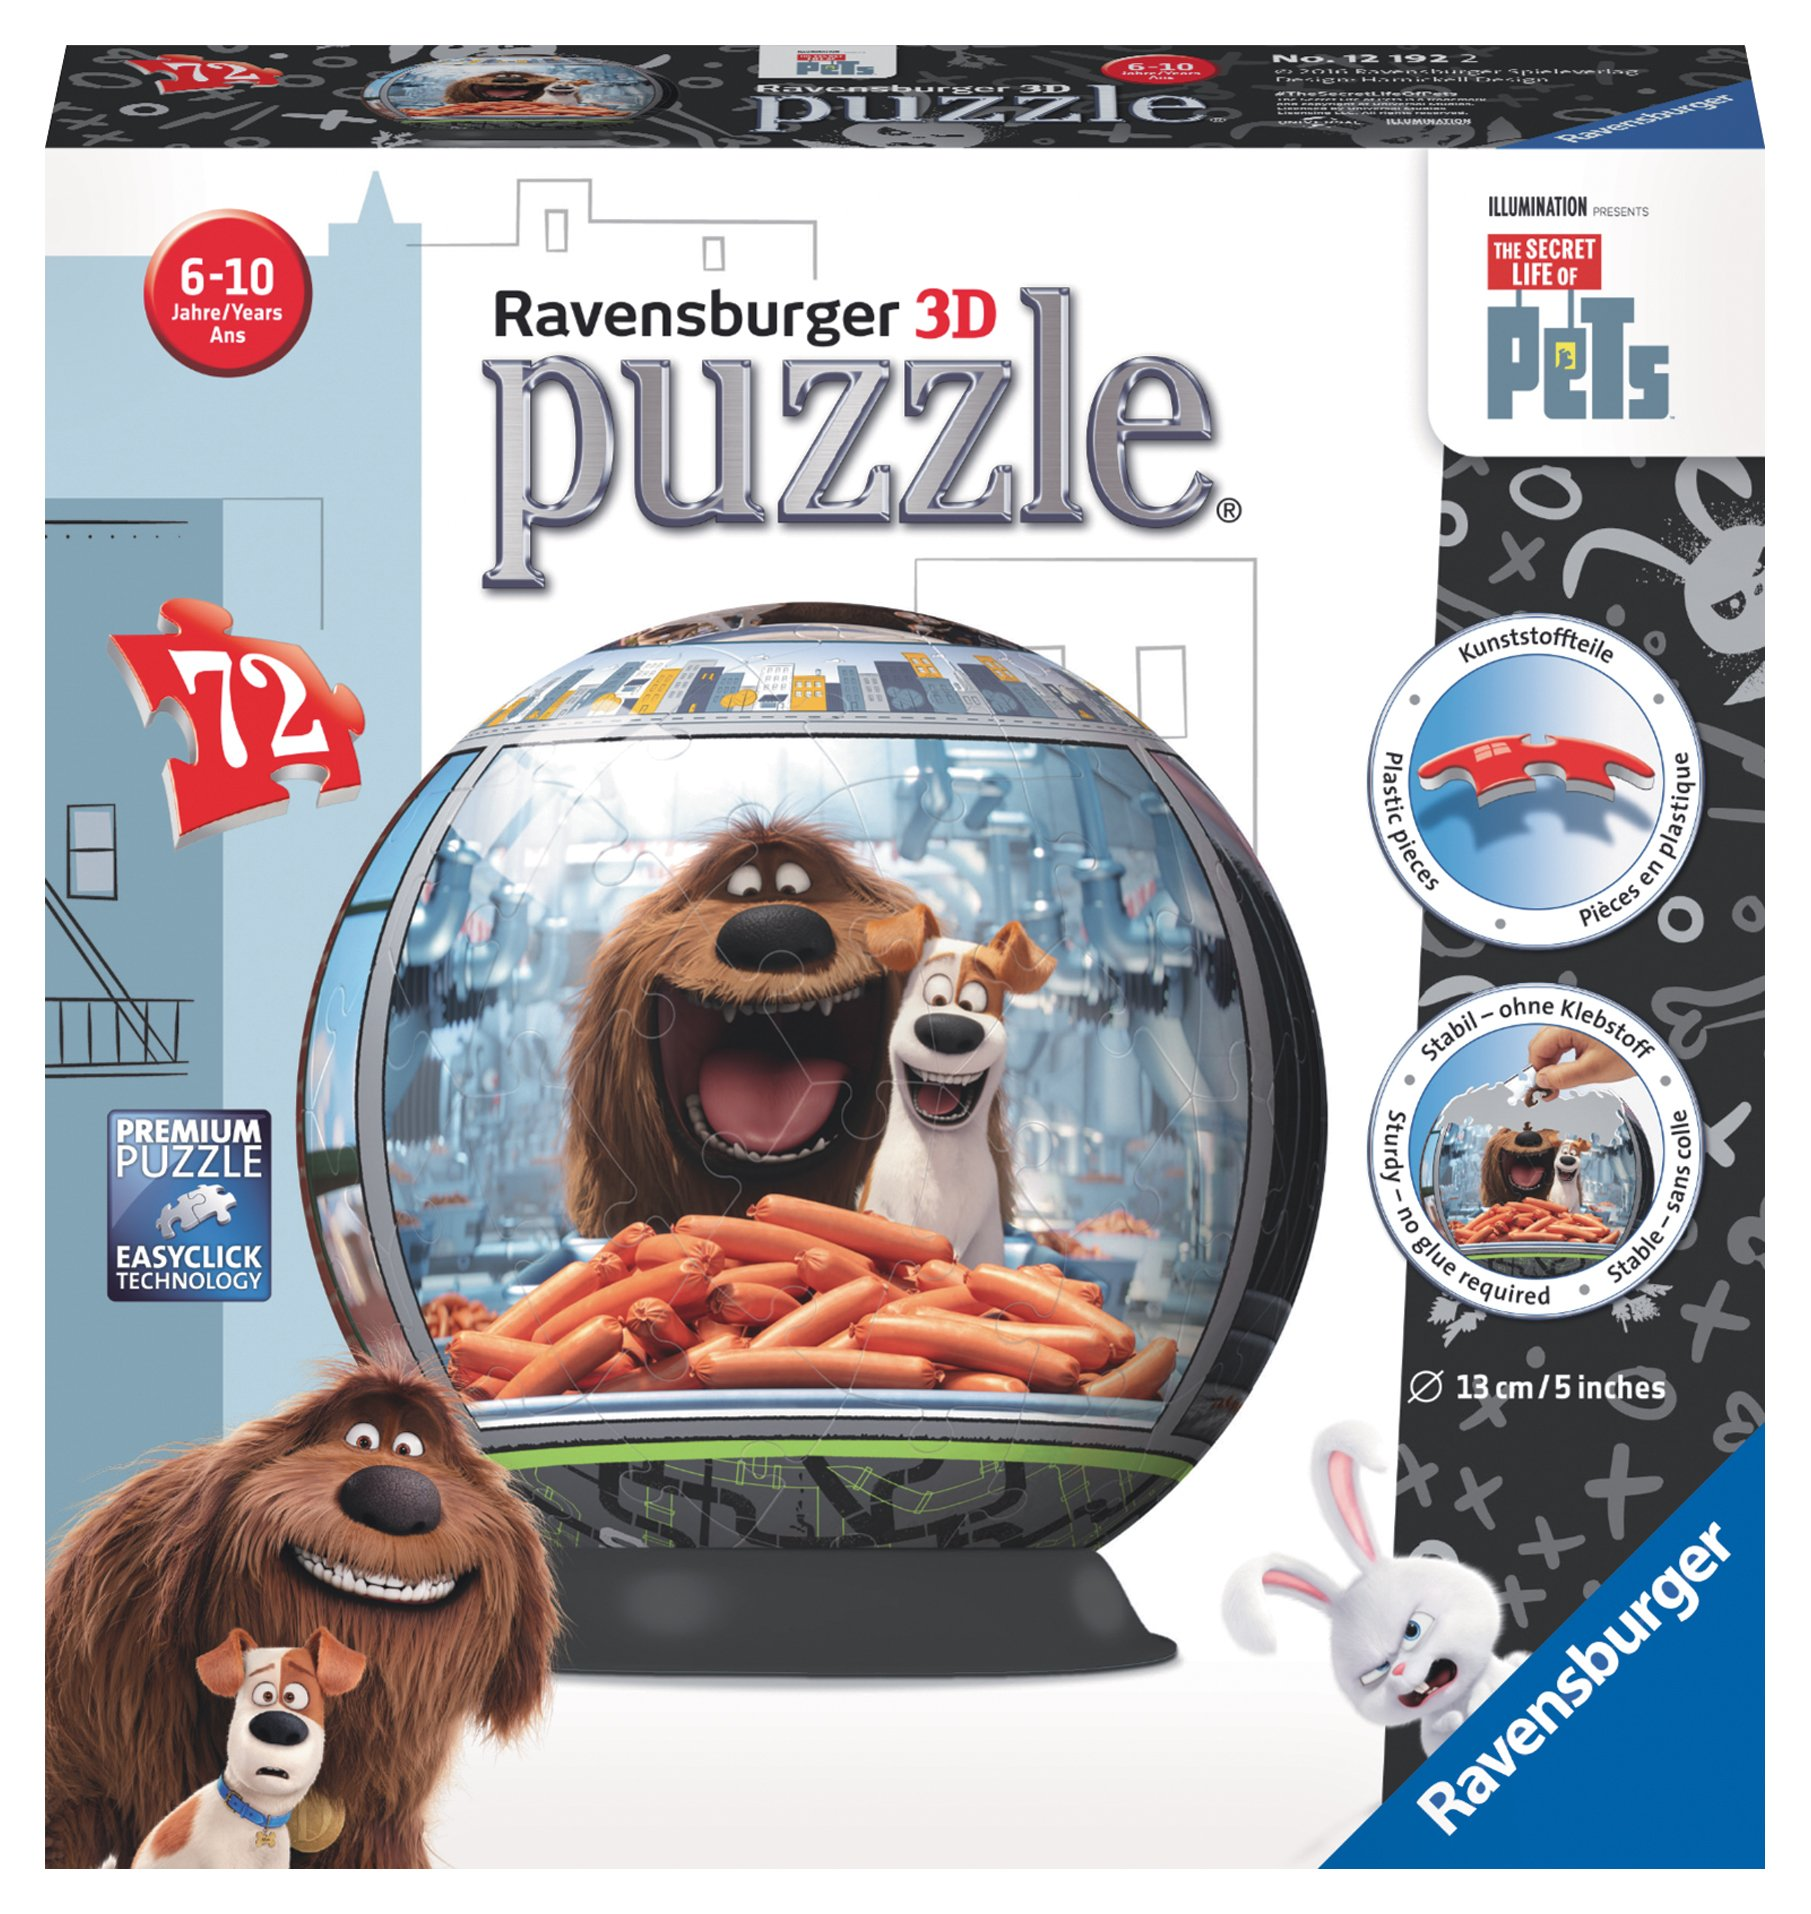 8a793f74fd1 Get Quotations · Ravensburger The Secret Life of Pets 72 Piece 3D Jigsaw  Puzzle Ball for Kids and Adults